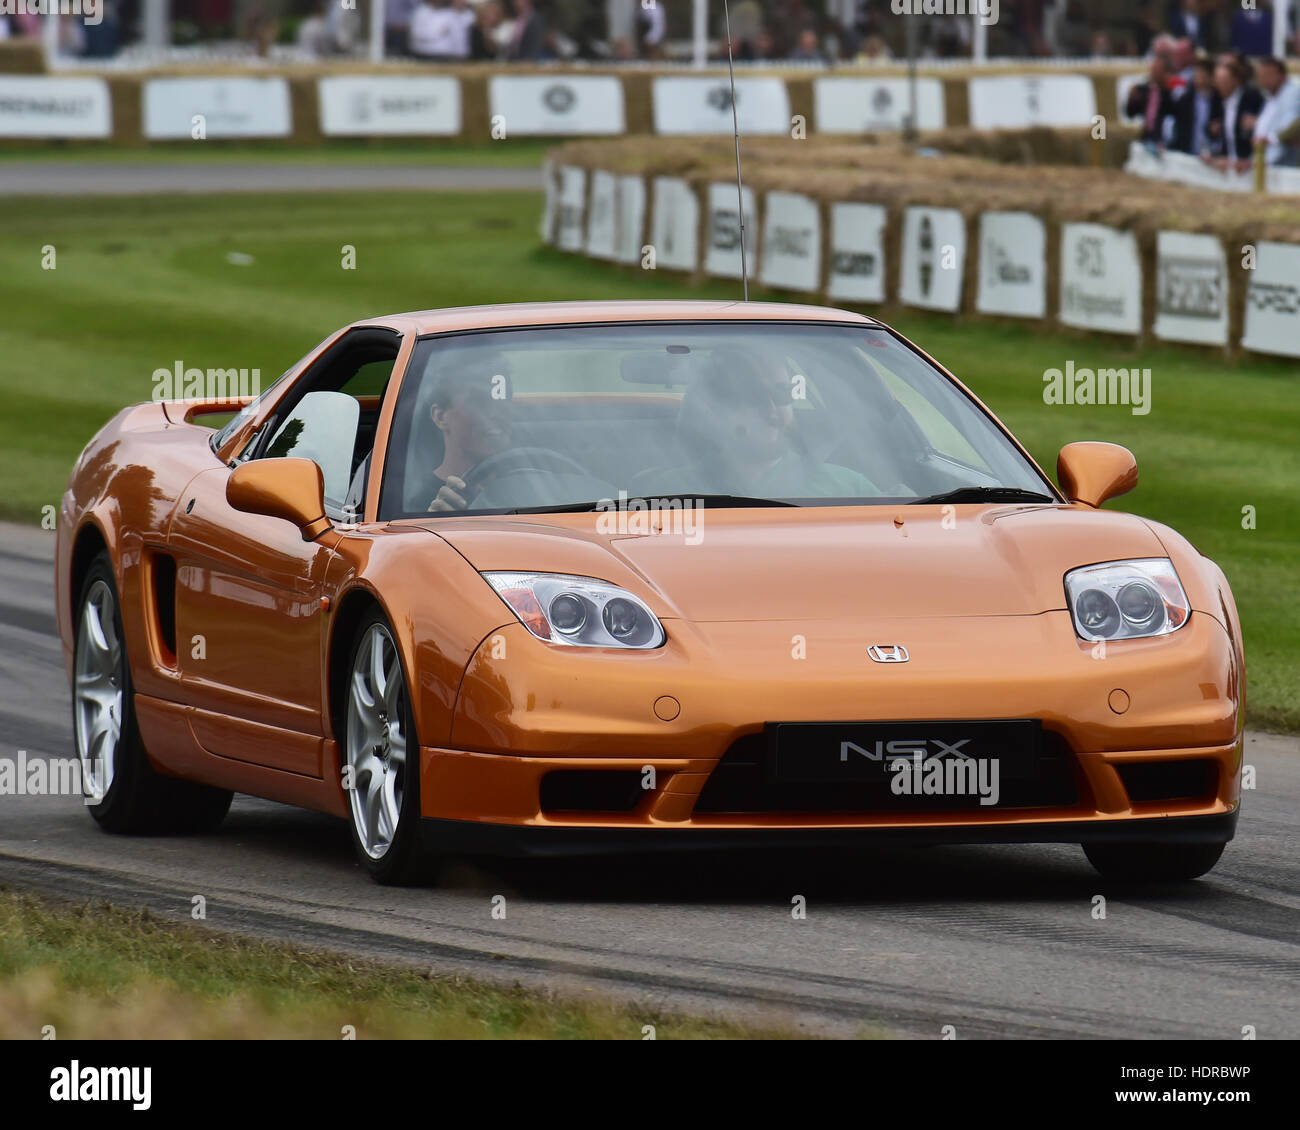 Honda NSX, 2005, Goodwood Festival of Speed, 2016. automobiles, cars, entertainment, Festival of Speed, FoS, Full - Stock Image